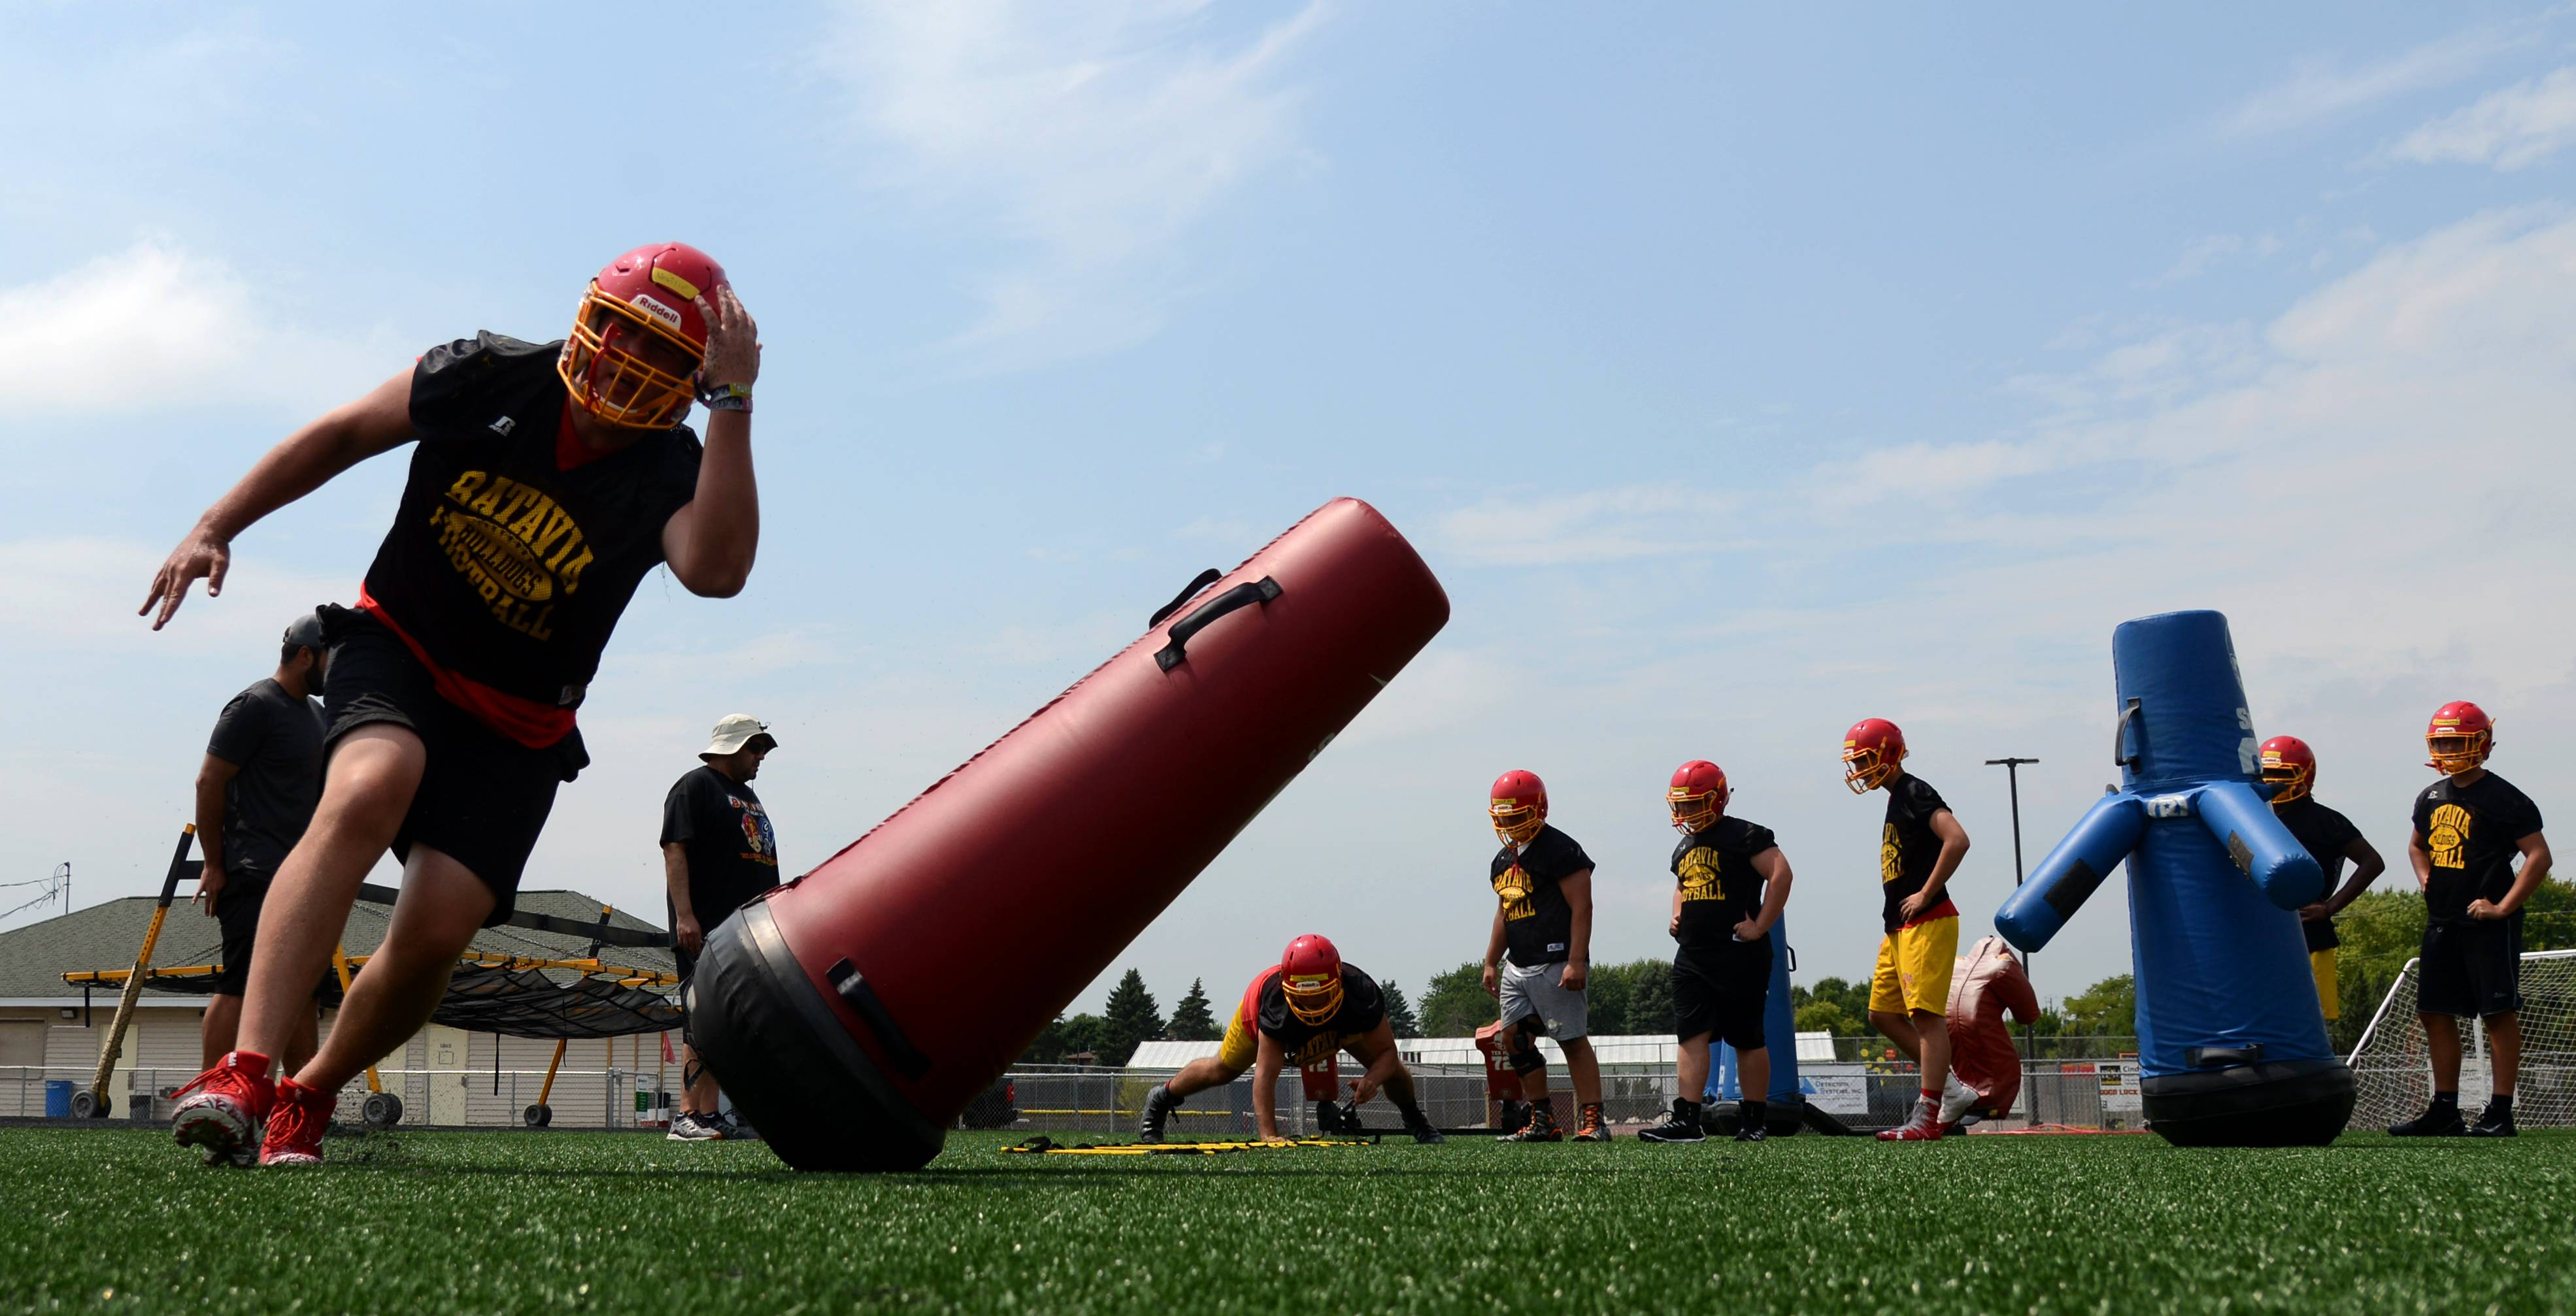 Senior McKinley Neville and the defending state champion Batavia Bulldogs football team took the field Monday for the first day of football practice at Batavia High School.